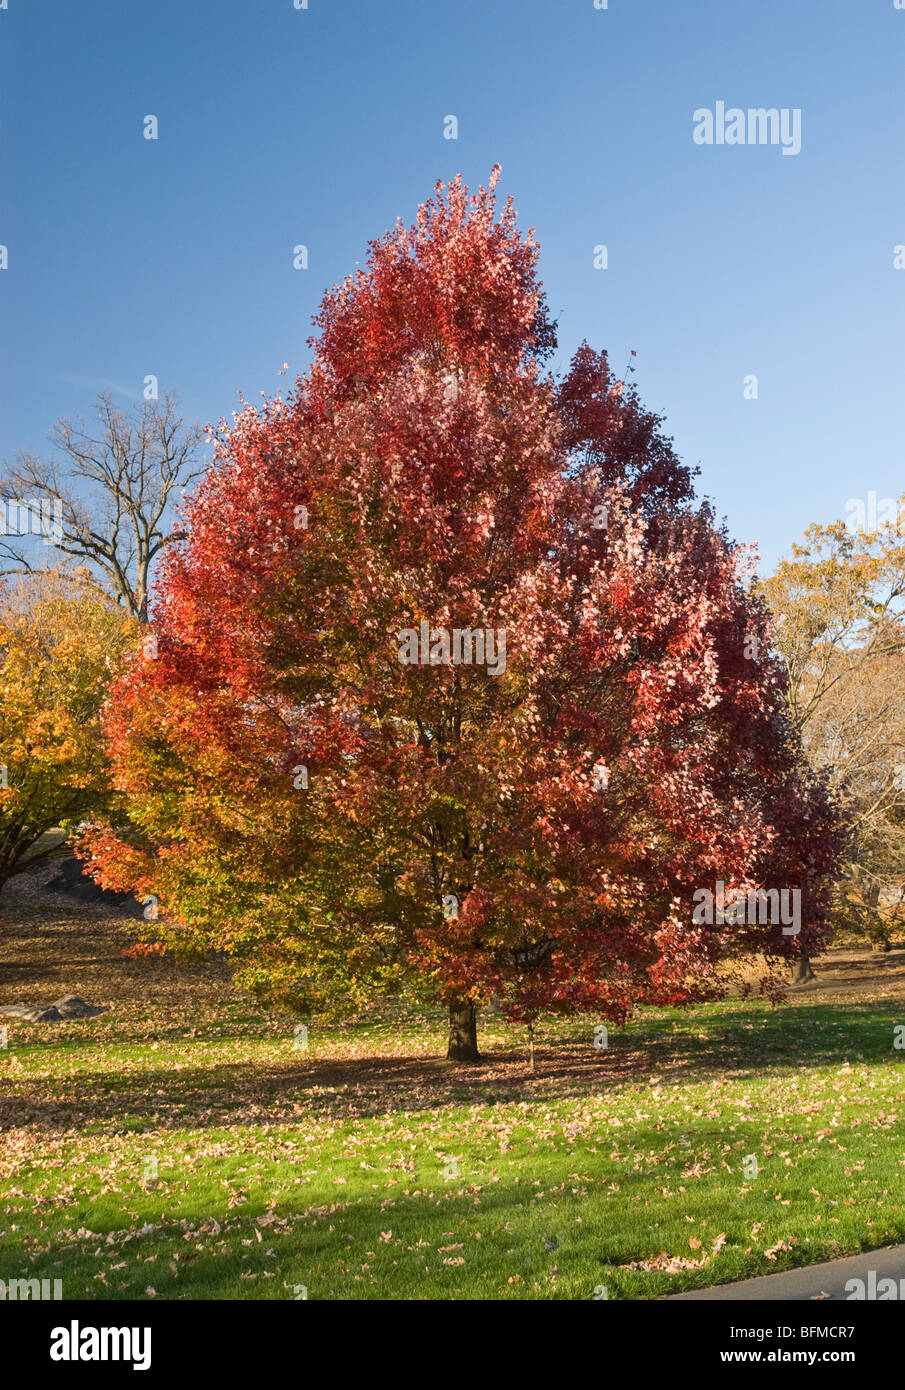 Ahorn October Glory Red Maple Tree Acer Rubrum